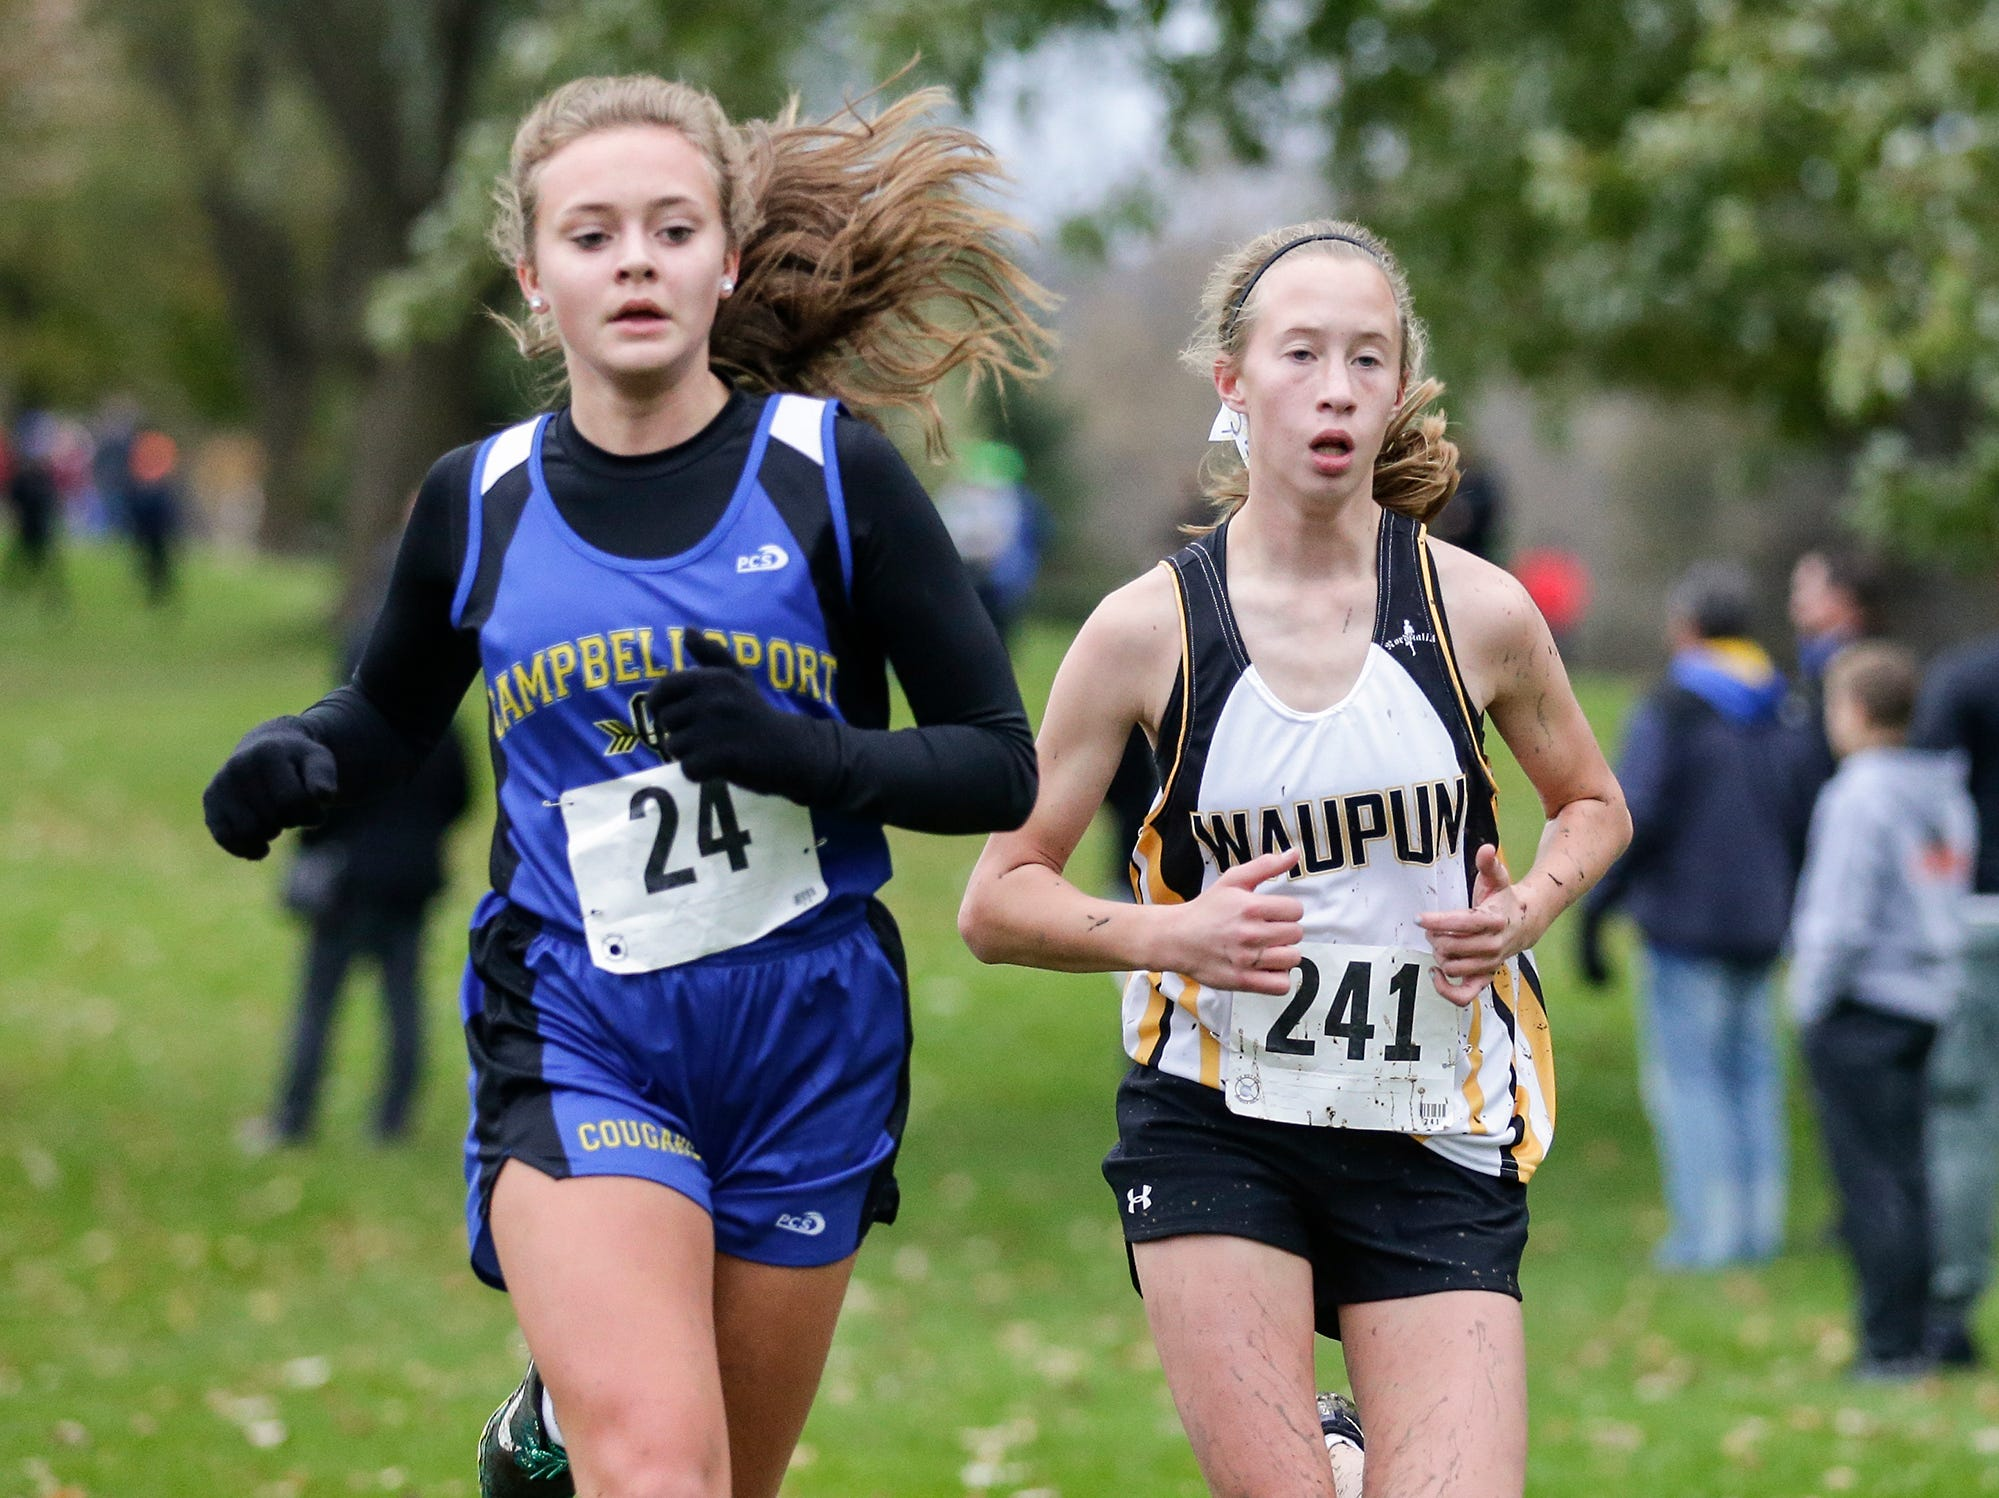 Campbellsport High School's Calla Loehr and Waupun's Naomi Aalsms run in the WIAA Division two Mayville sectional cross country meet at the Mayville golf course Friday, October 19, 2018. Doug Raflik/USA TODAY NETWORK-Wisconsin